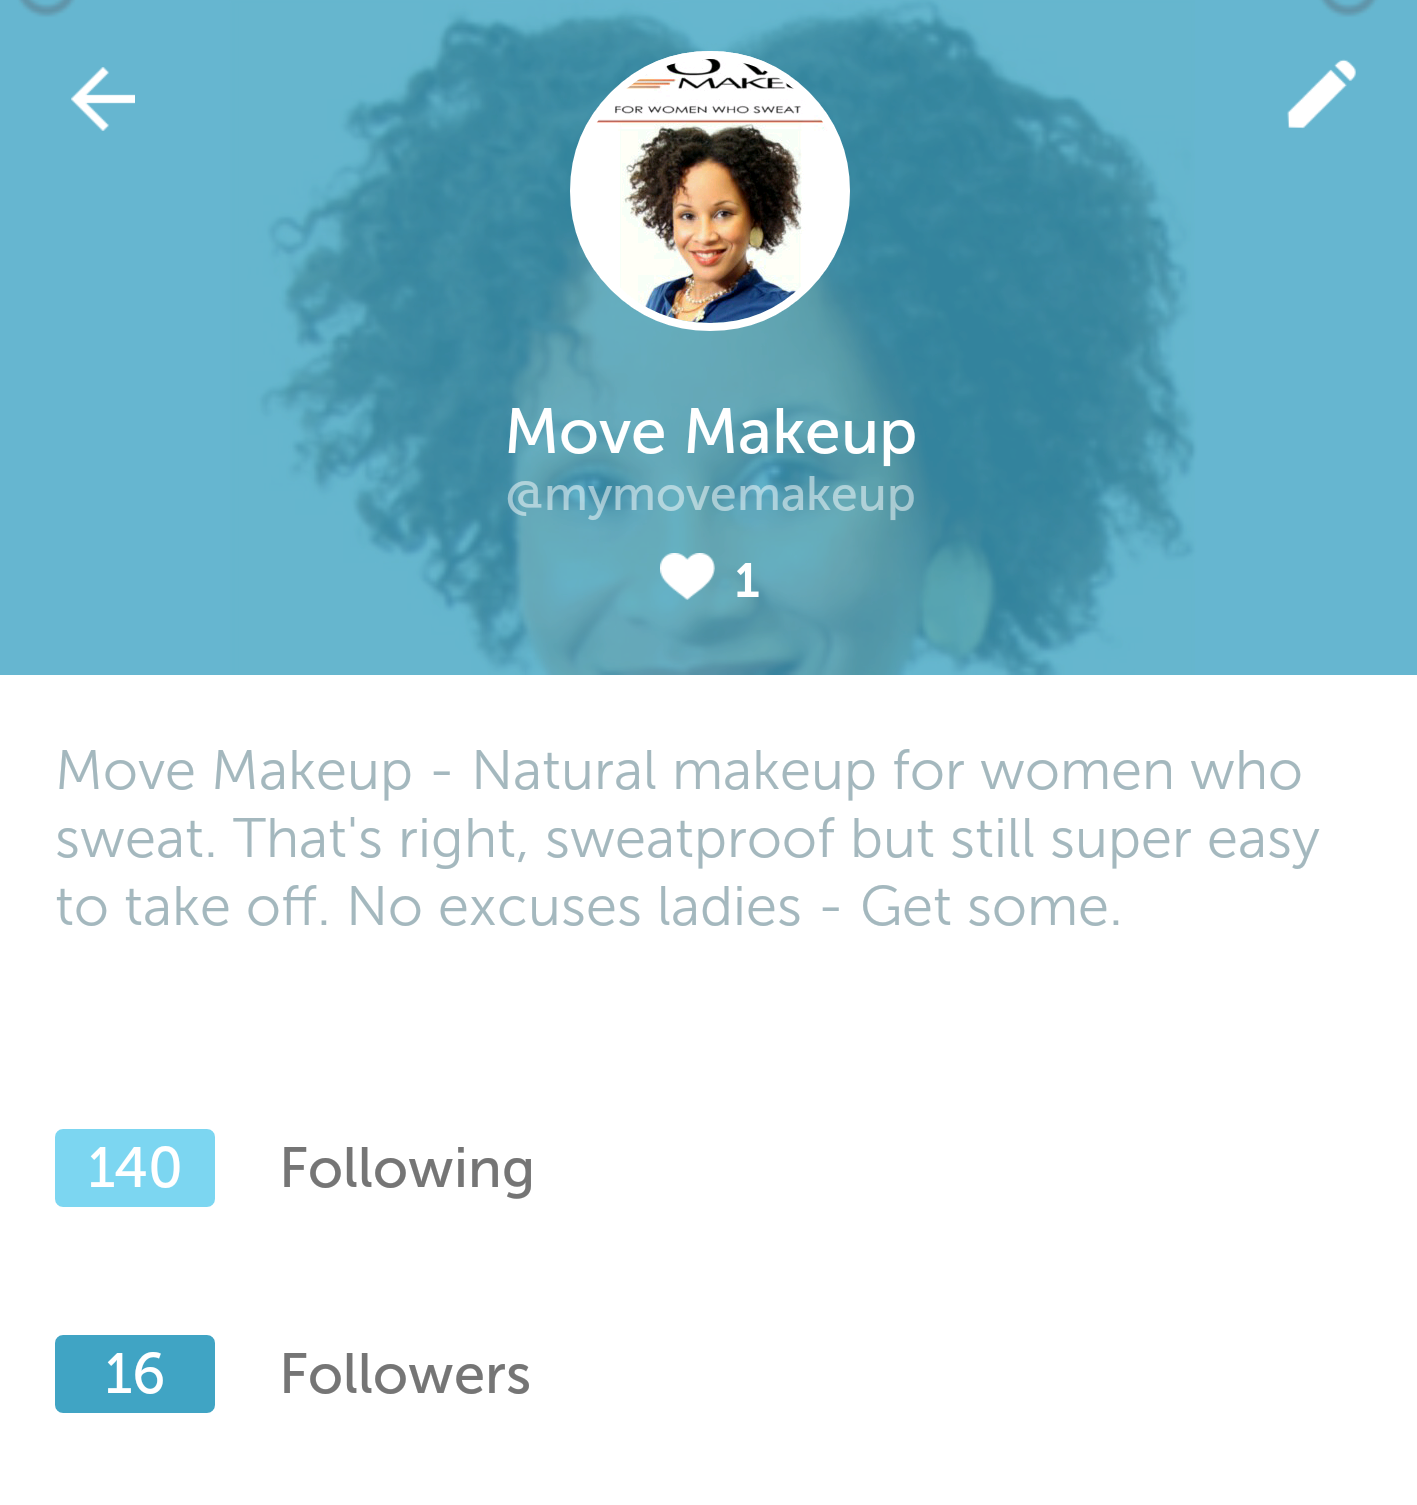 As you can see, Move Makeup needs more followers and more friends to follow!